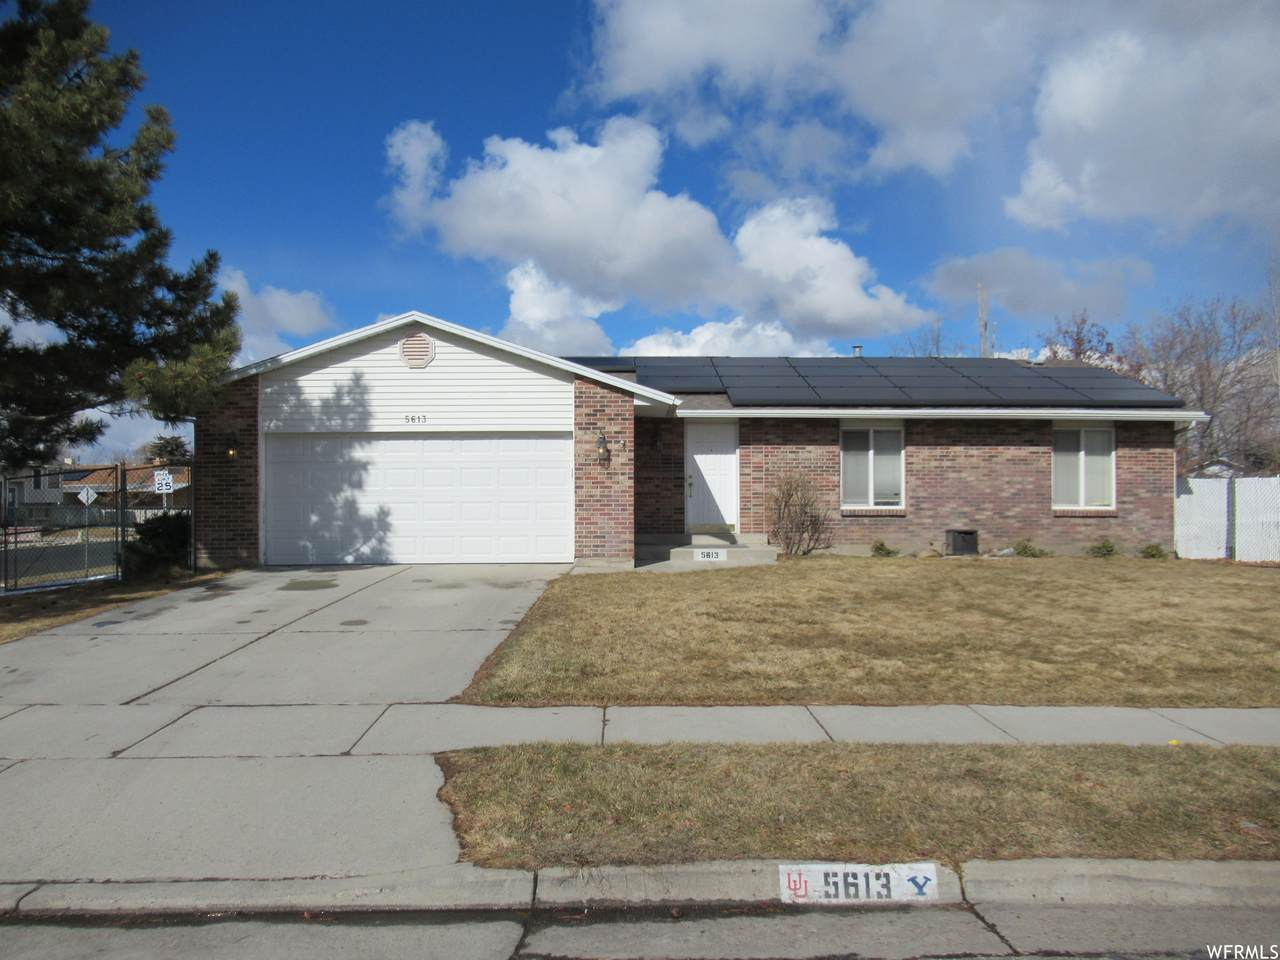 5613 Whitewood Dr Dr - Photo 1